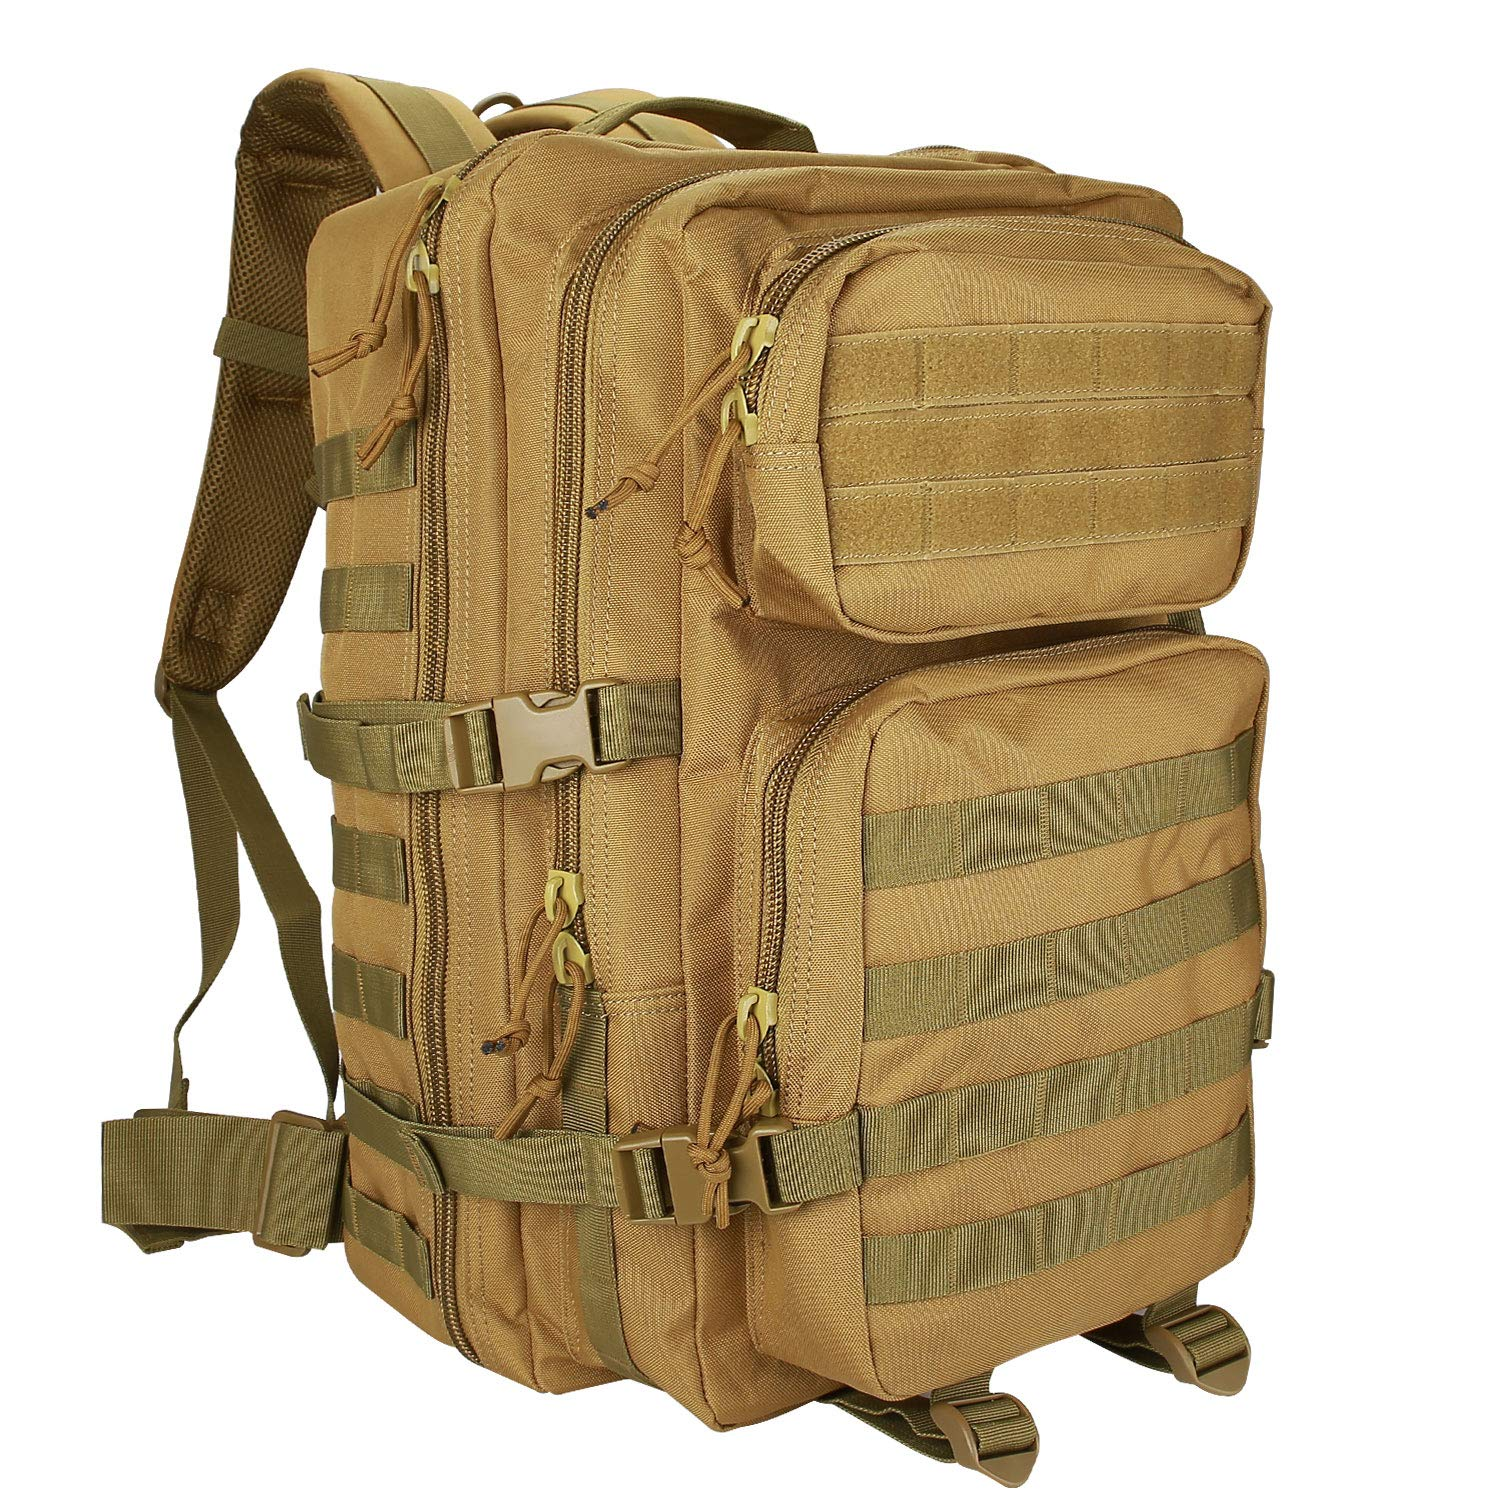 ProCase Tactical Backpack Bag 40L Large Capacity 3 Day Military Army Assault Pack Carry Bag Backpacks Rucksacks for Hunting Trekking Camping Outdoor Activities -Khaki